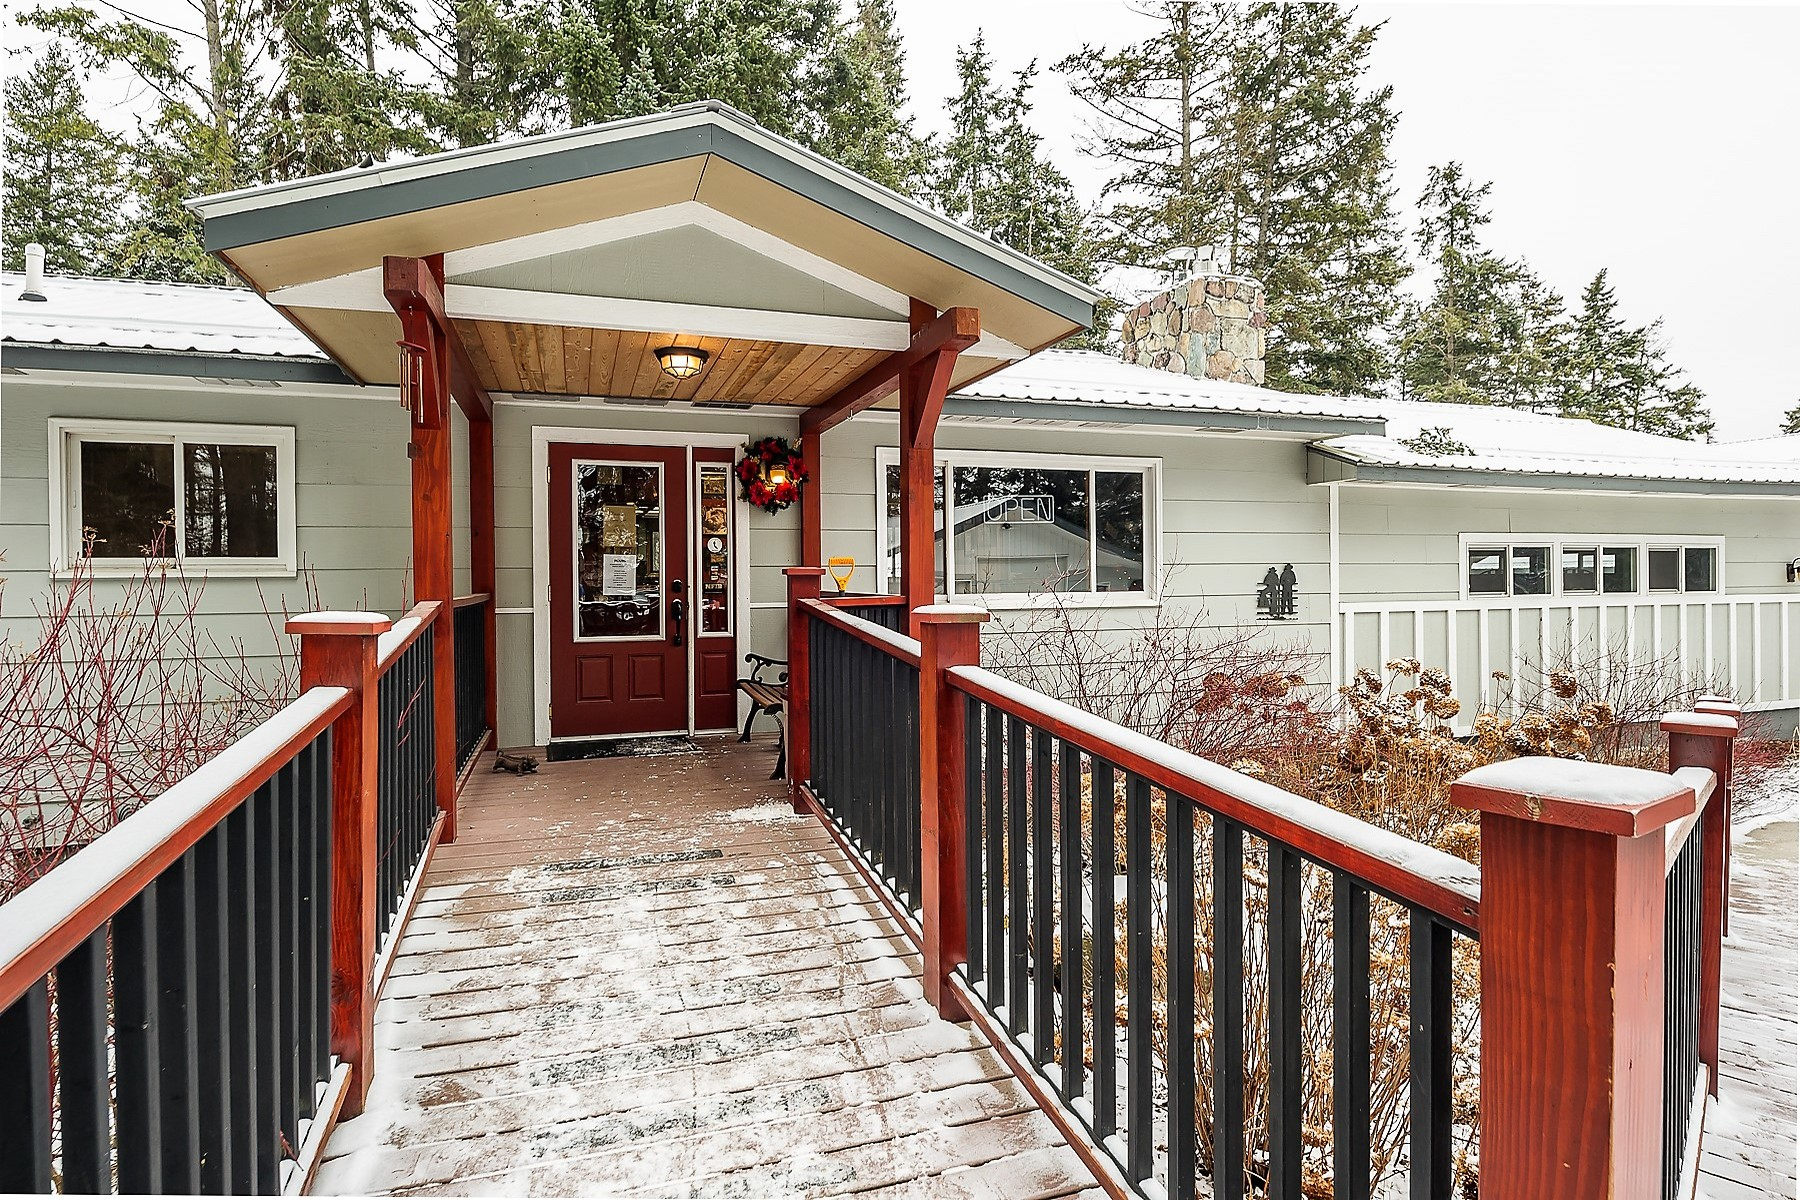 Single Family Home for Sale at 5395 Us-93 , Whitefish, MT 59937 5395 Us-93, Whitefish, Montana, 59937 United States